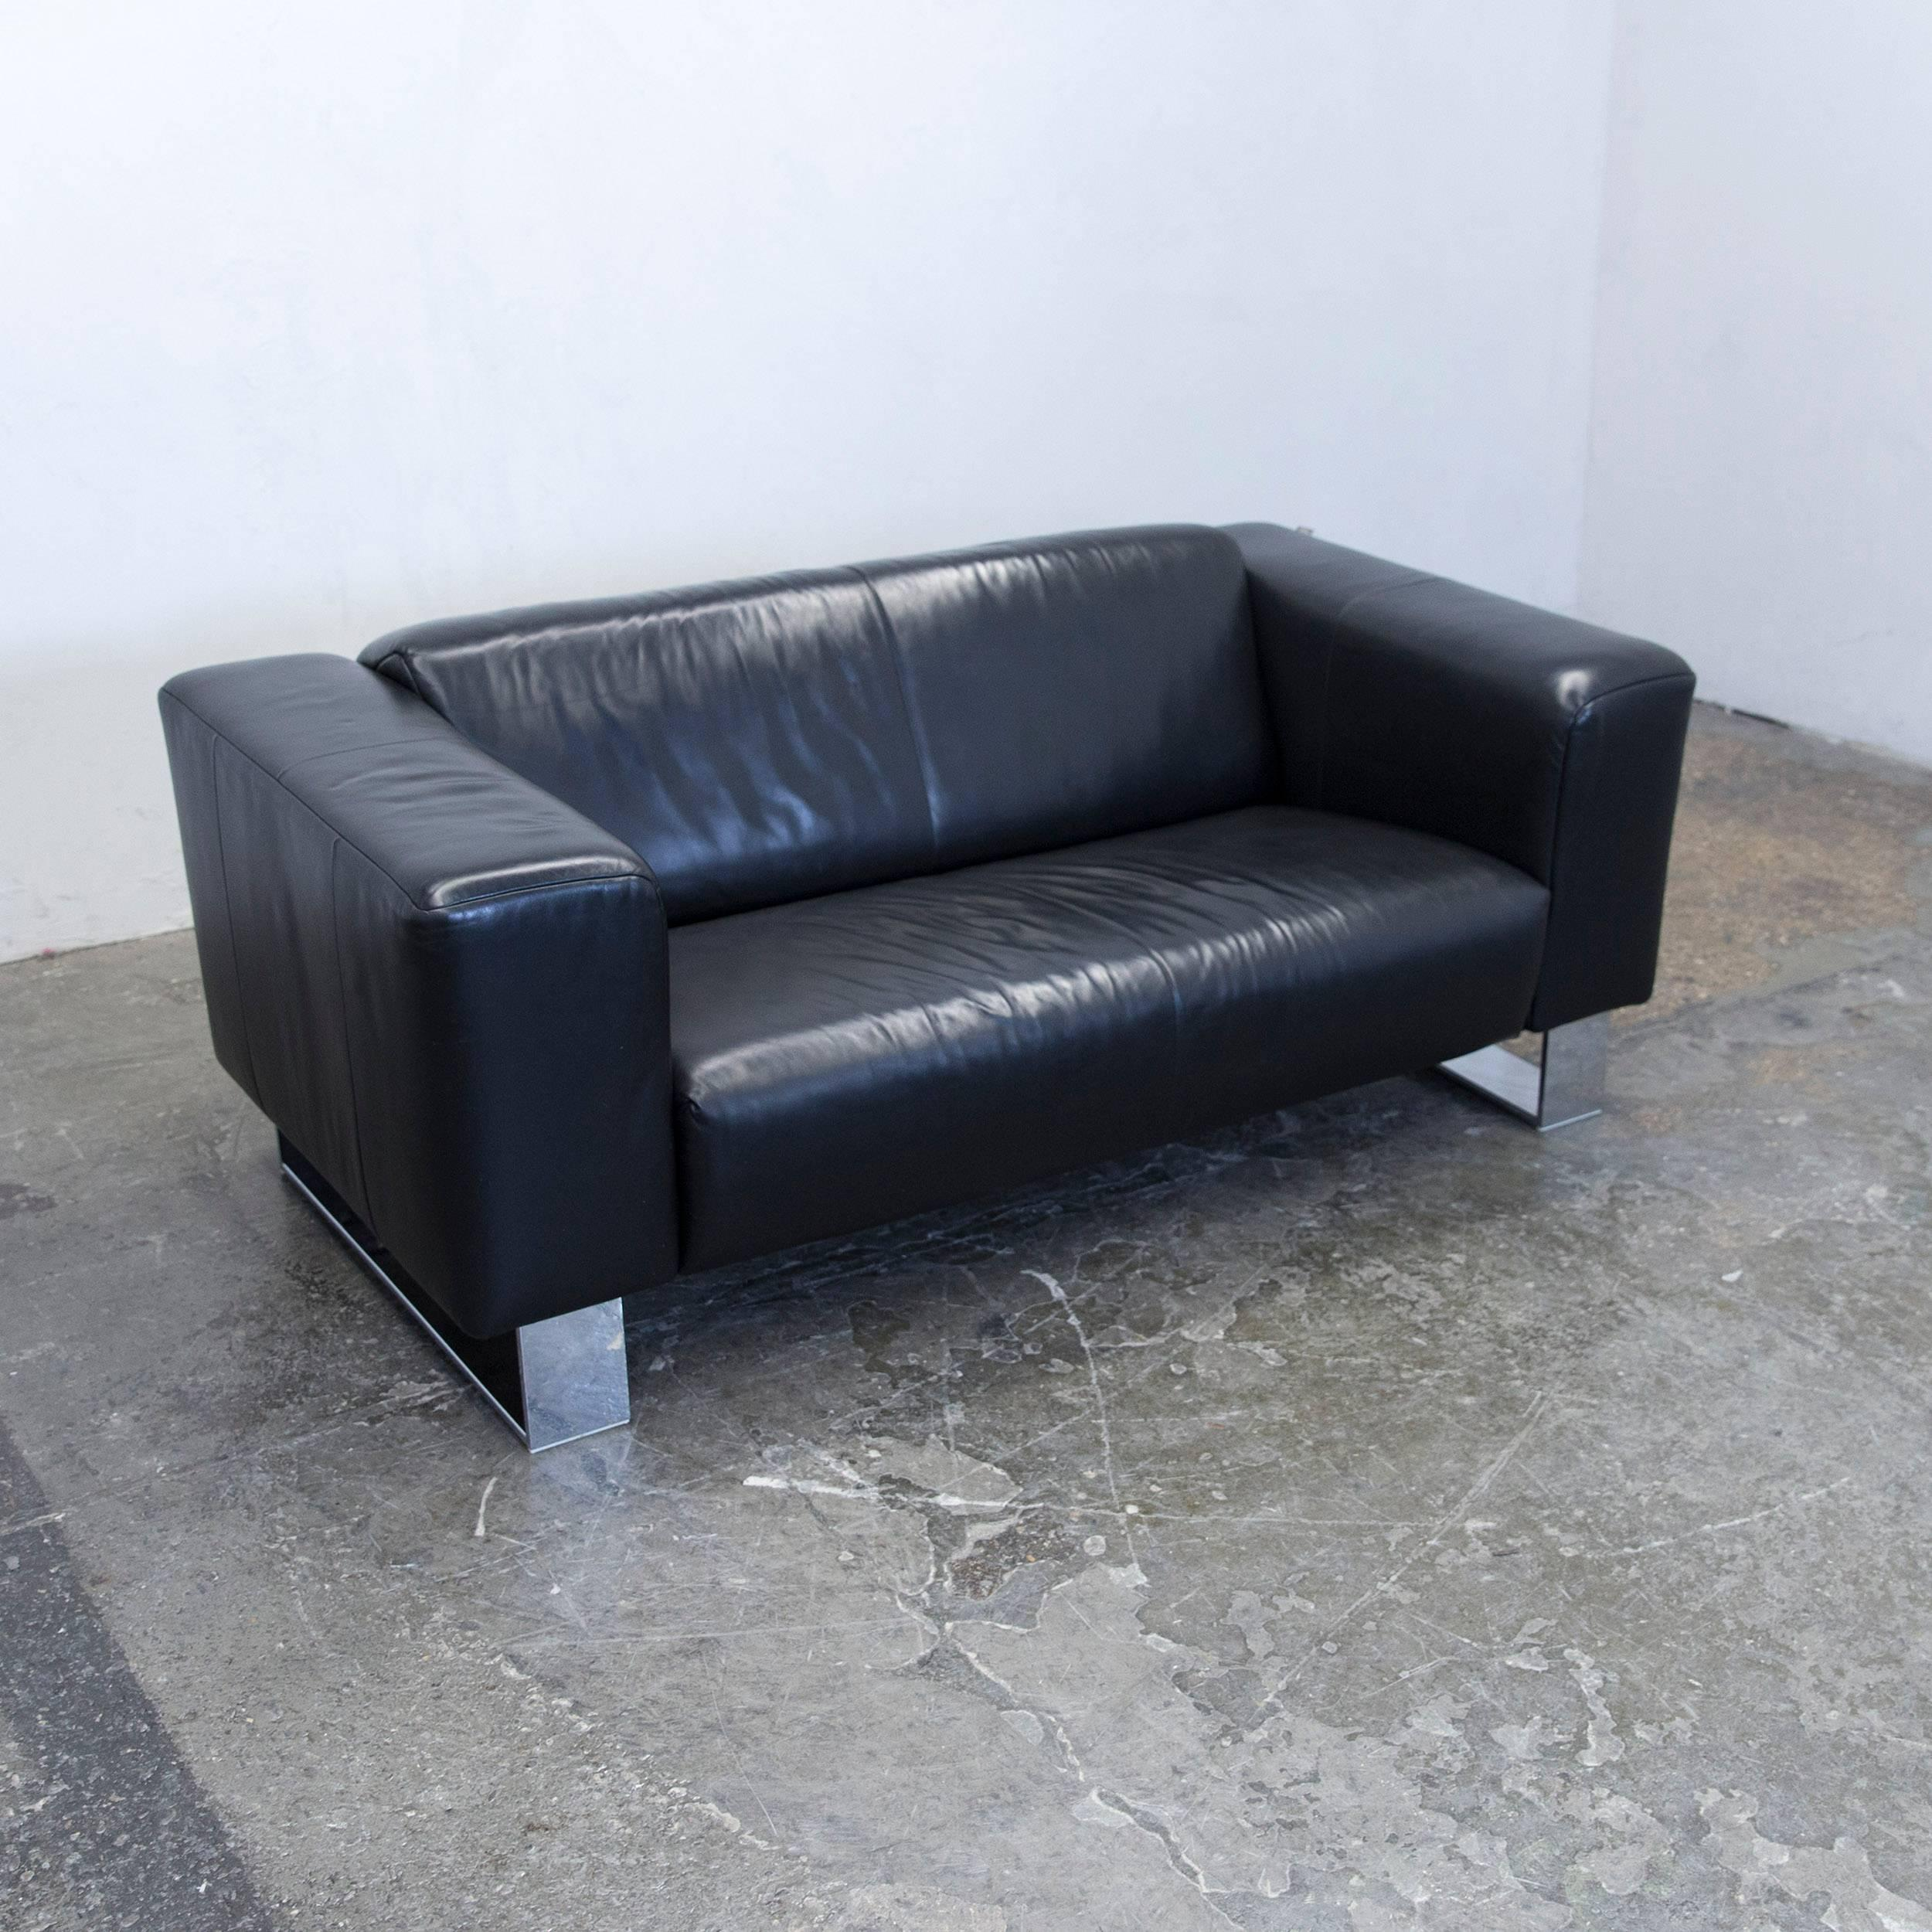 Rolf Benz Bmp Sessel Rolf Benz Bmp Designer Sofa Leather Black Two-seat Couch